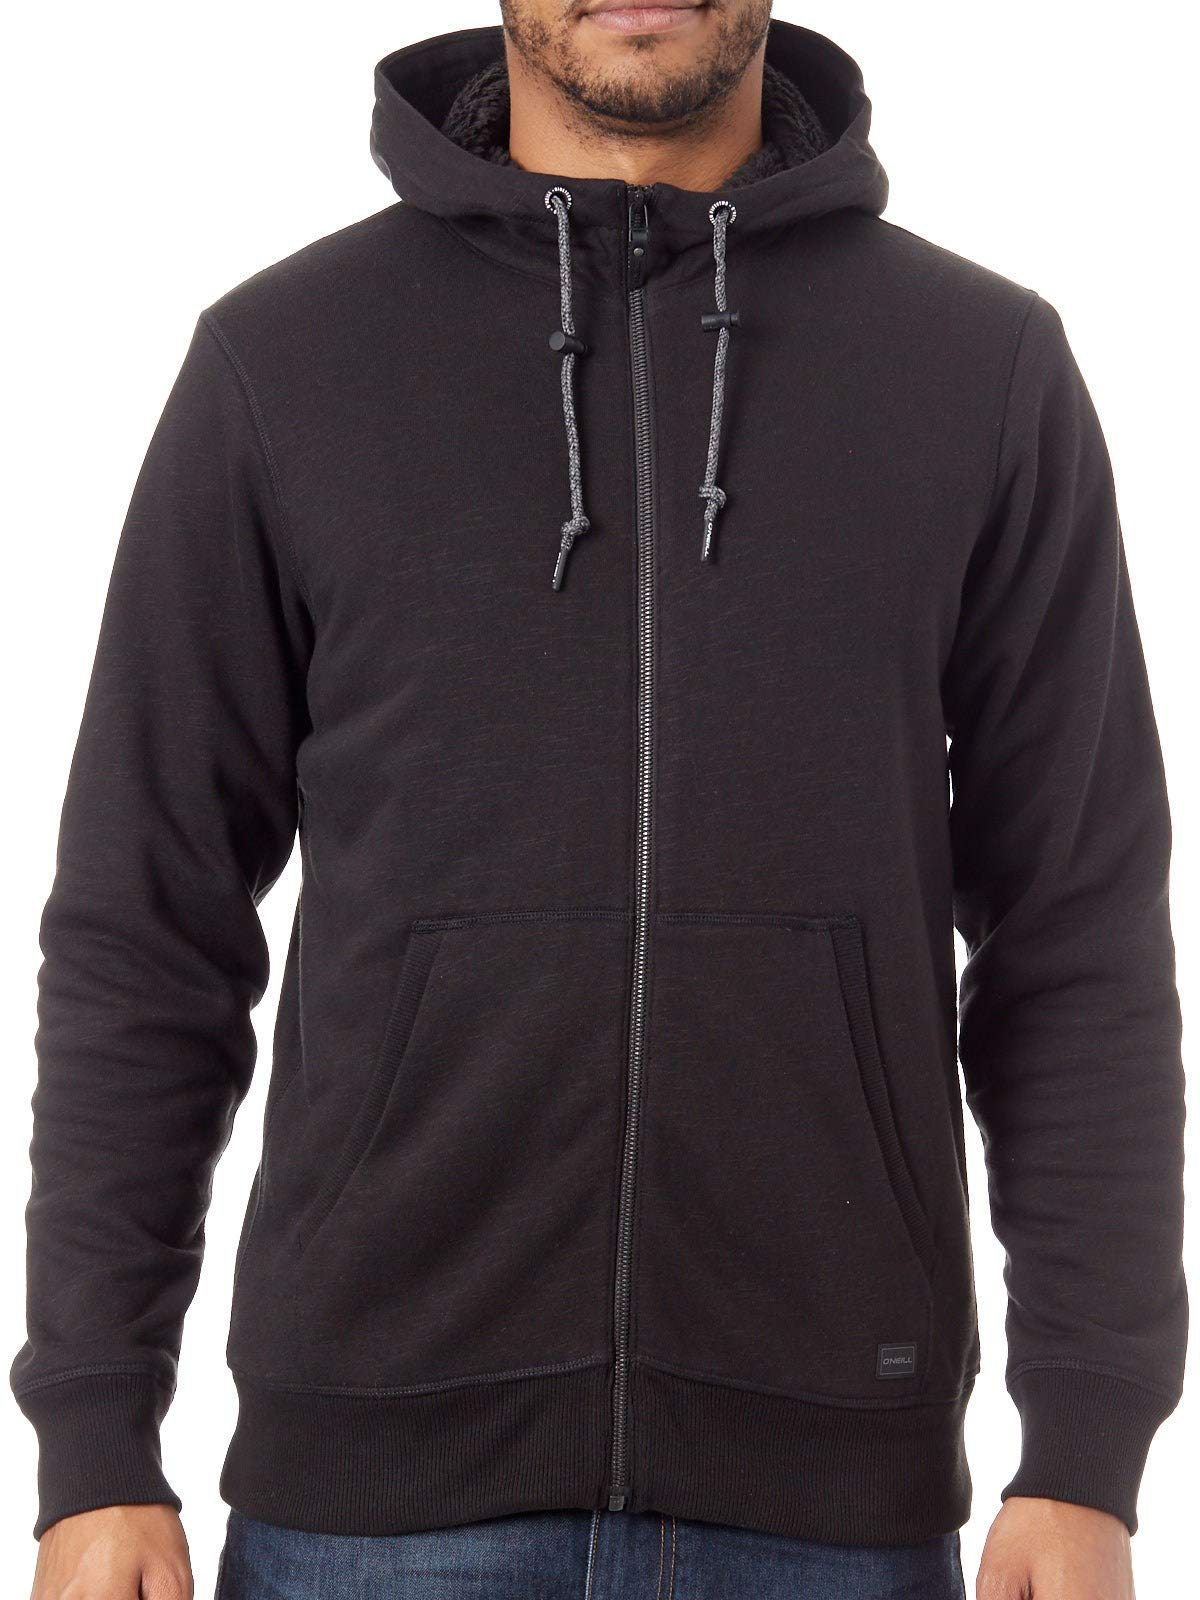 O'Neill Men's Jack's Base Sherpa Super Fleece 1